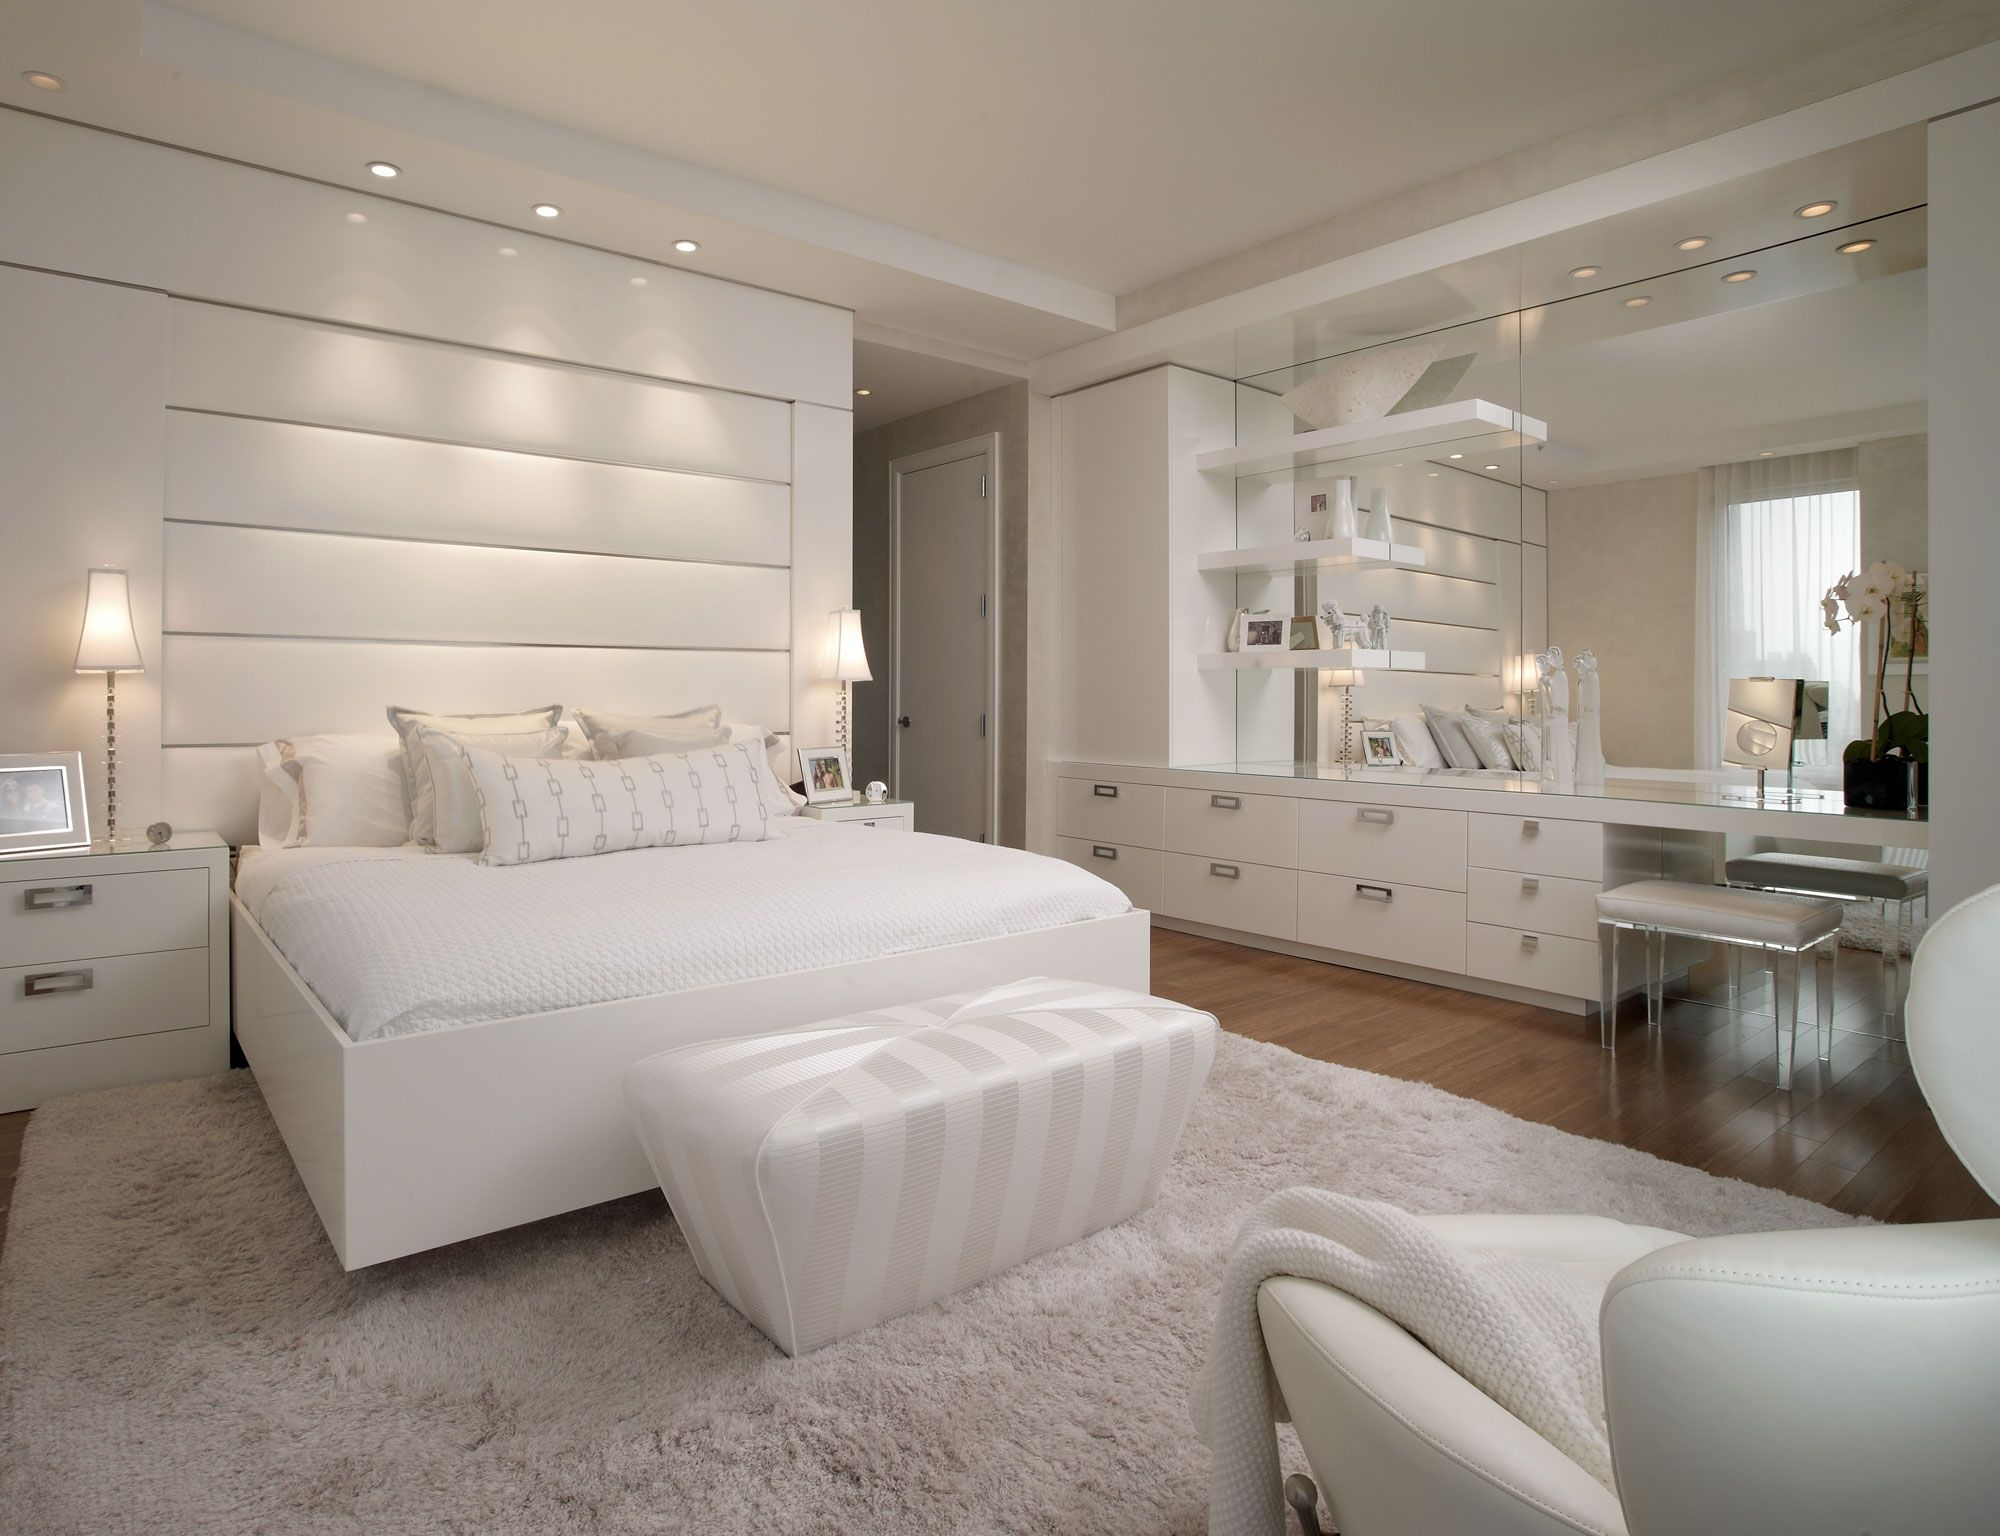 Modern Bedroom Look luxury all white bedroom decorating ideas amazing glamorous